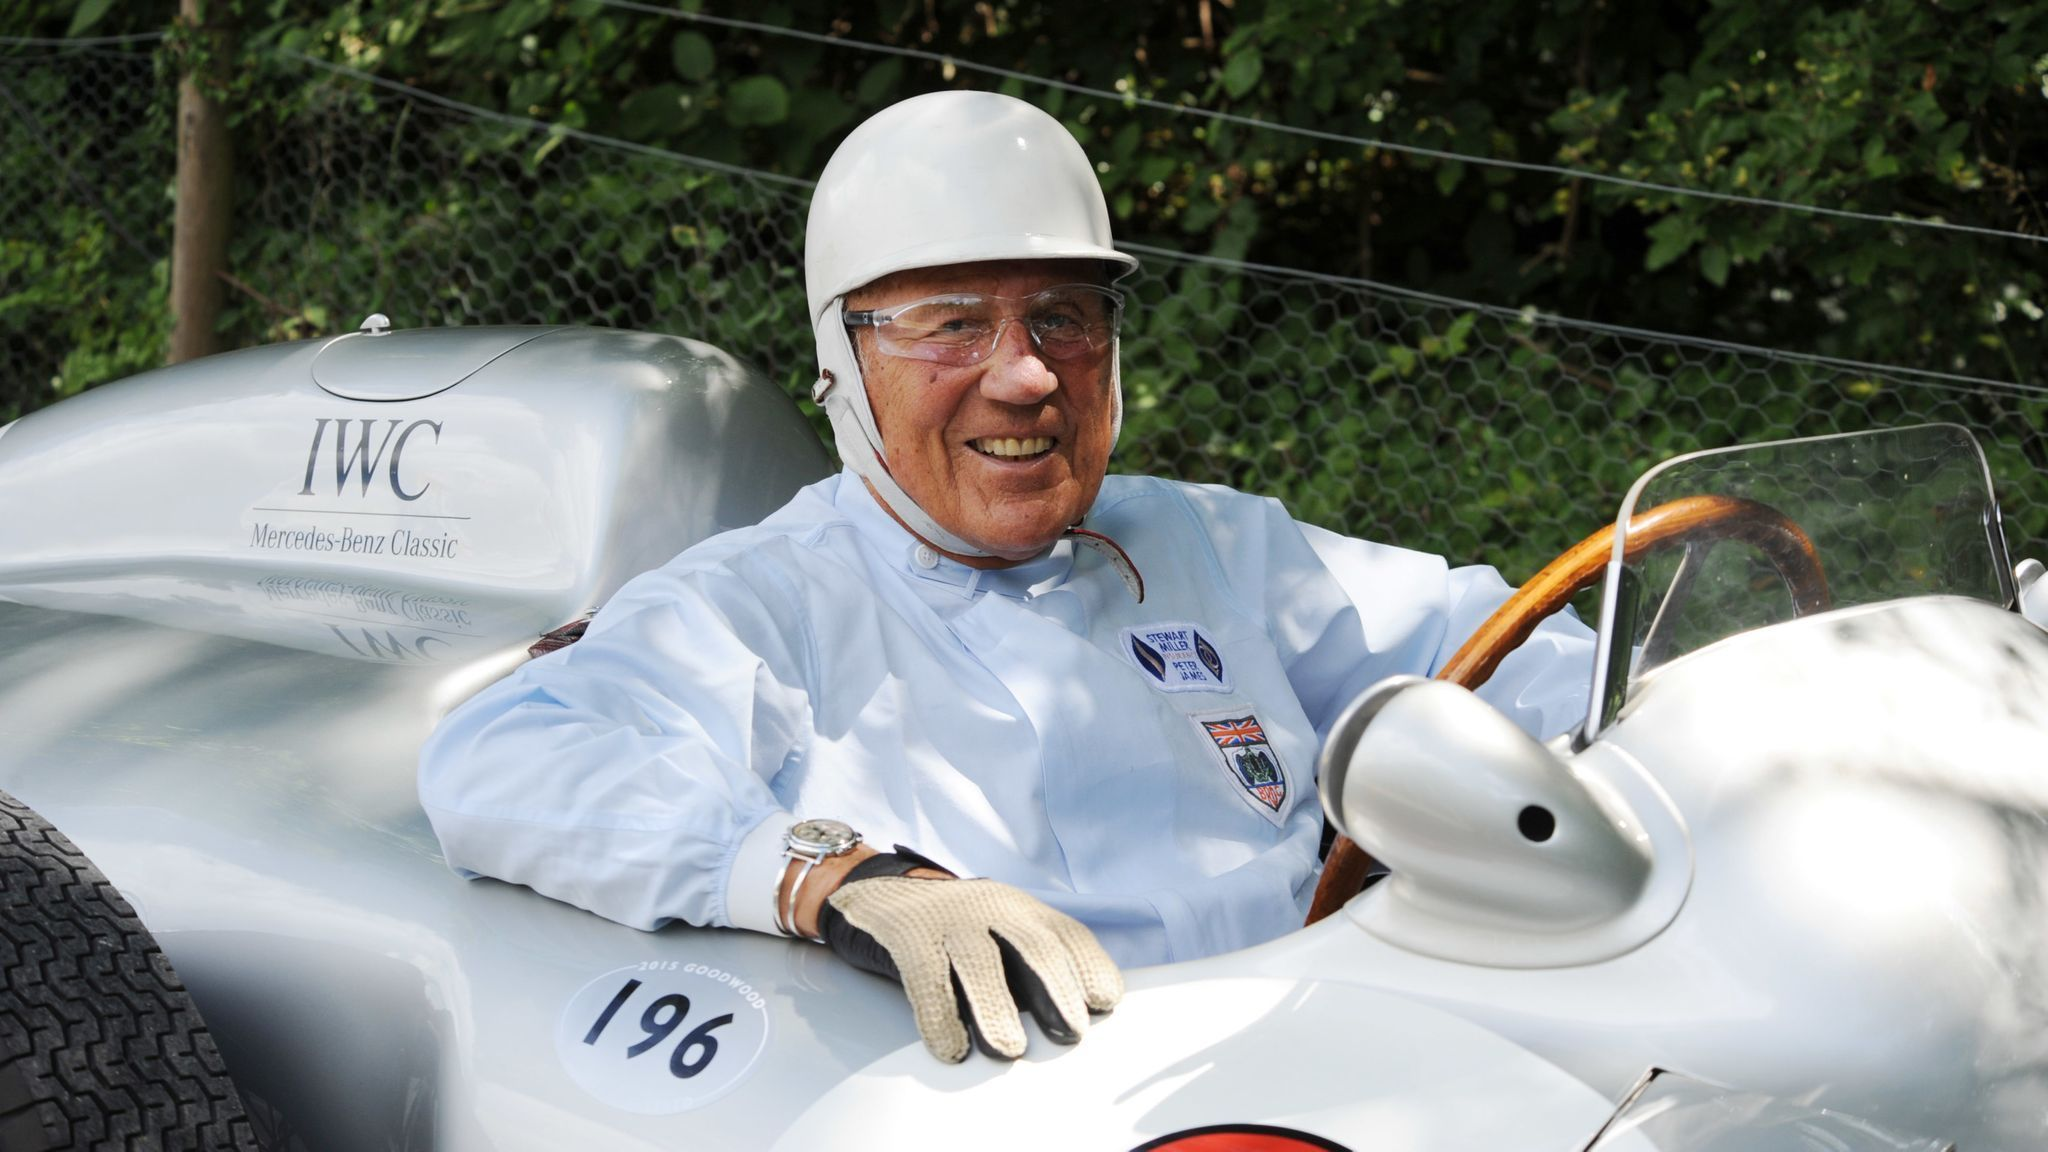 Sir Stirling Moss, Tributes, F1